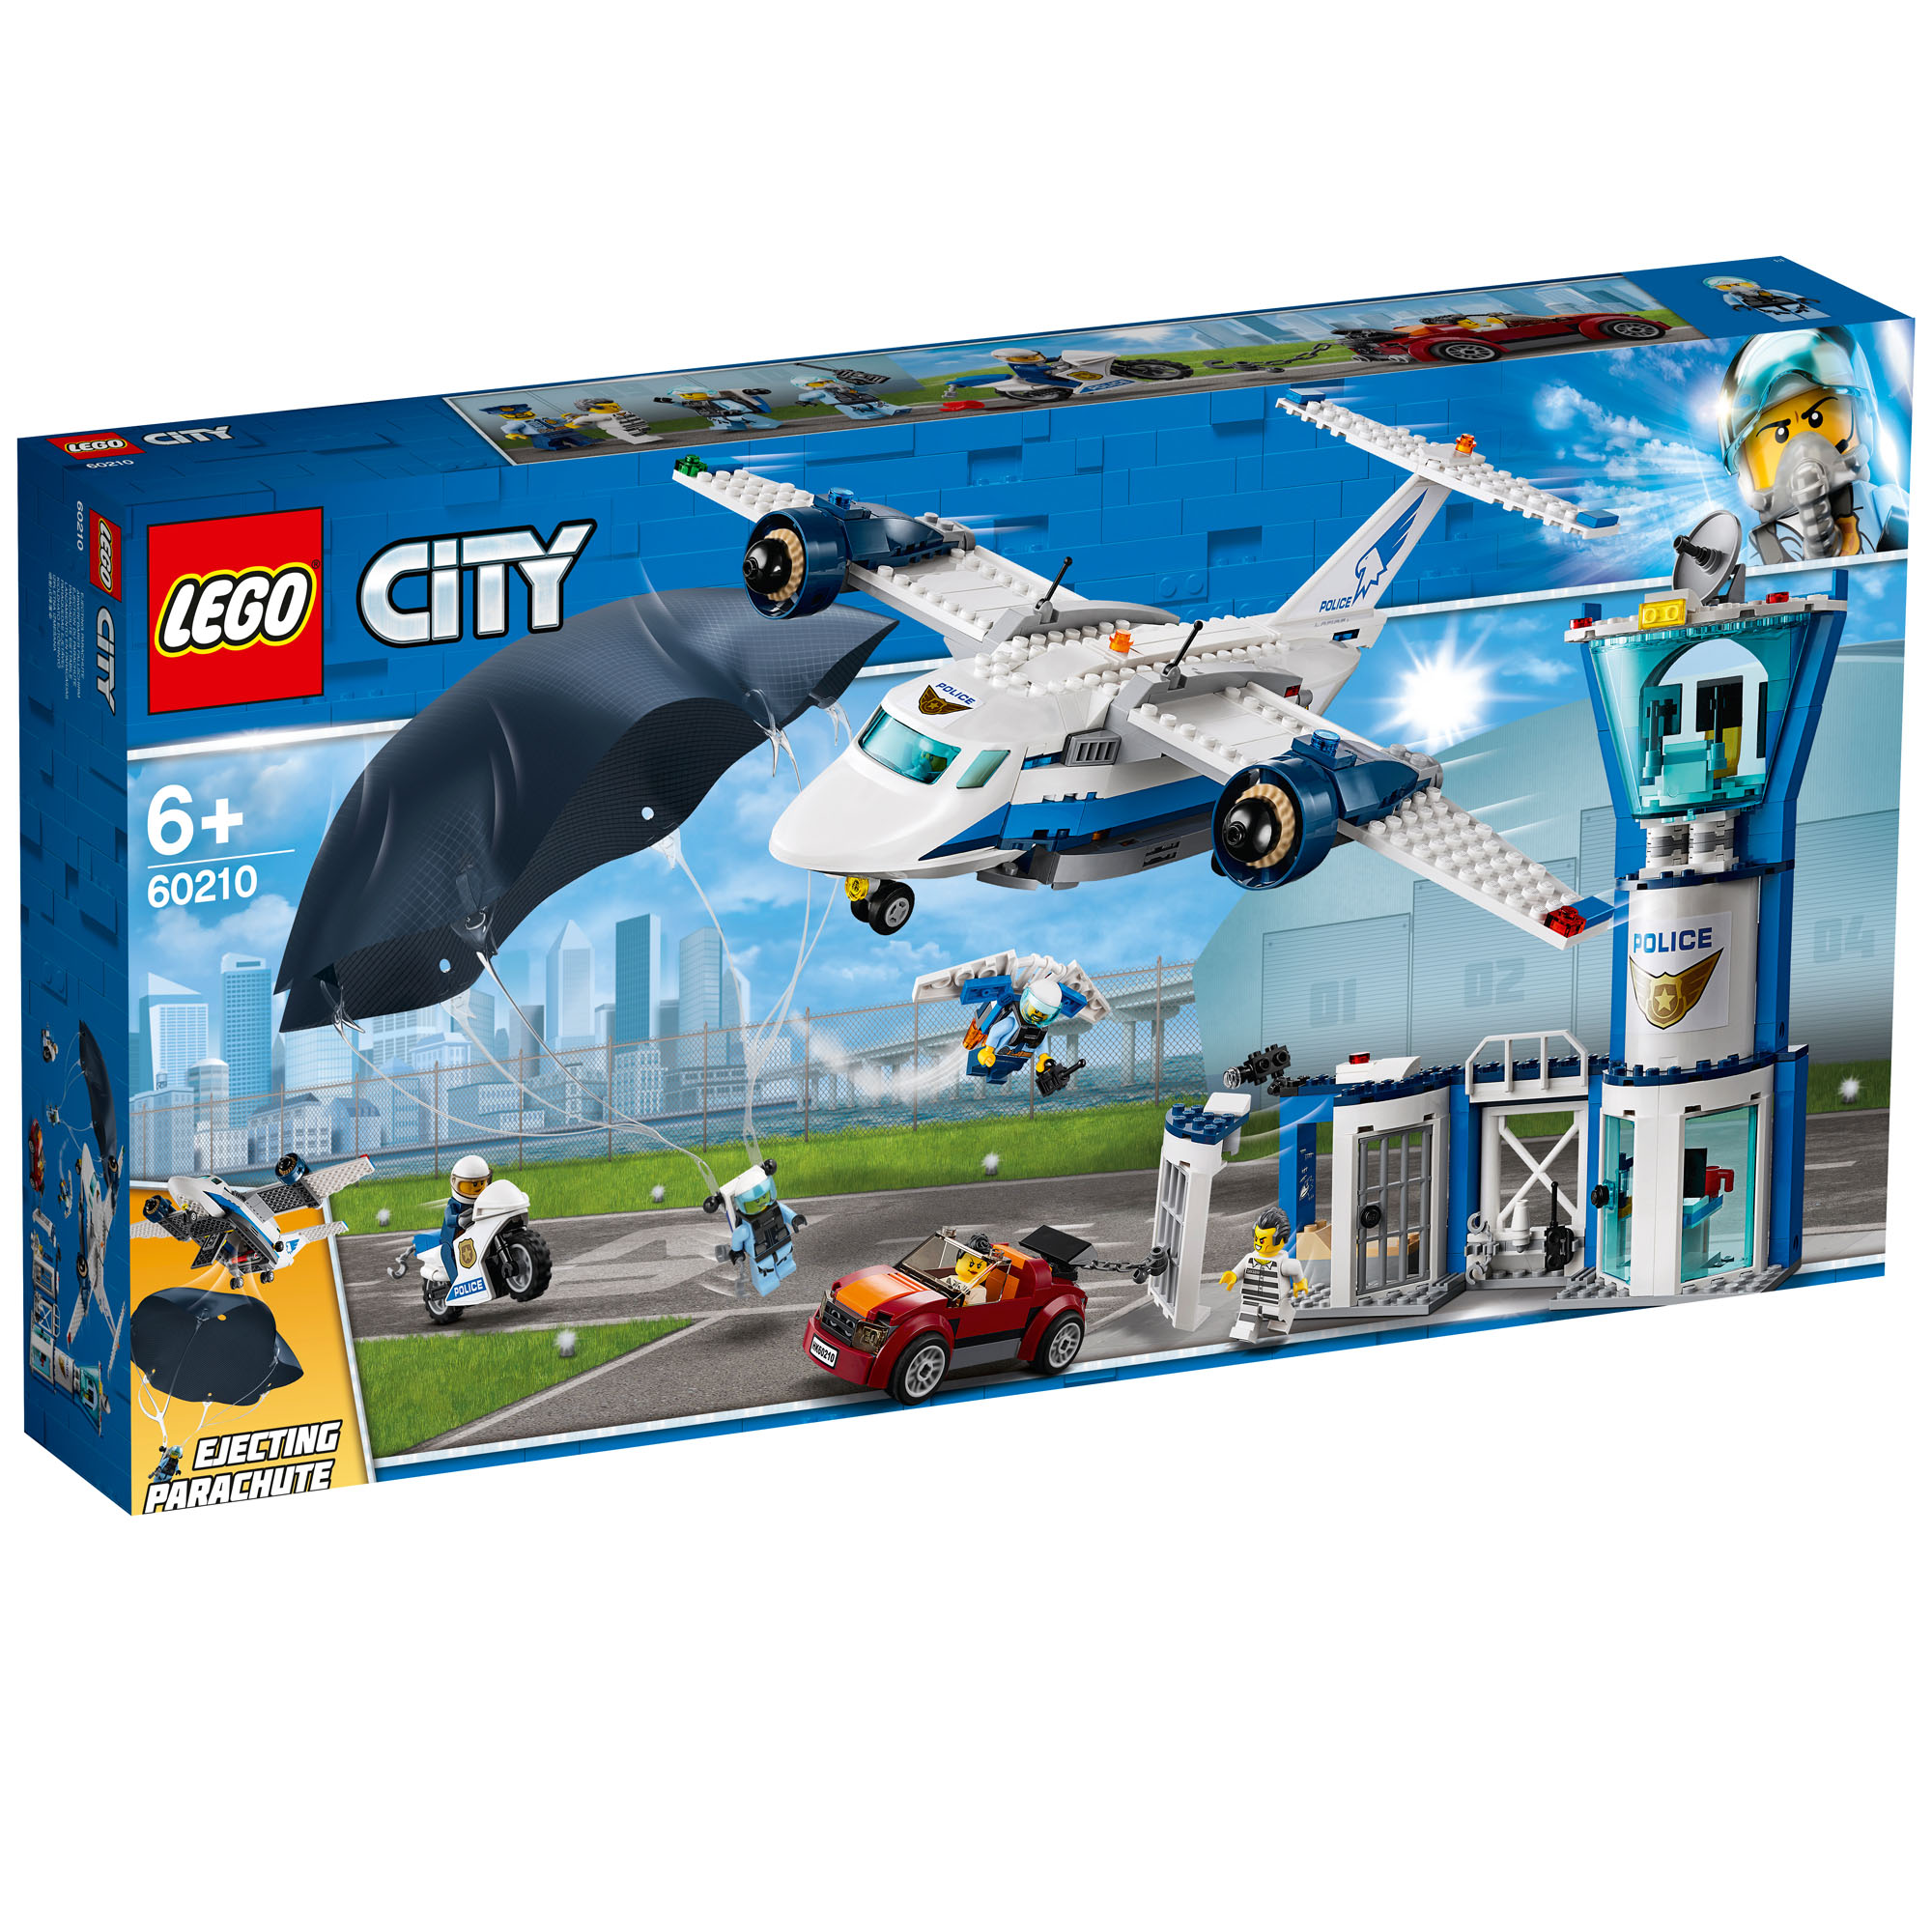 Details about 60210 LEGO CITY Sky Police Air Base 529 Pieces Age 6+ New  Release for 2019!